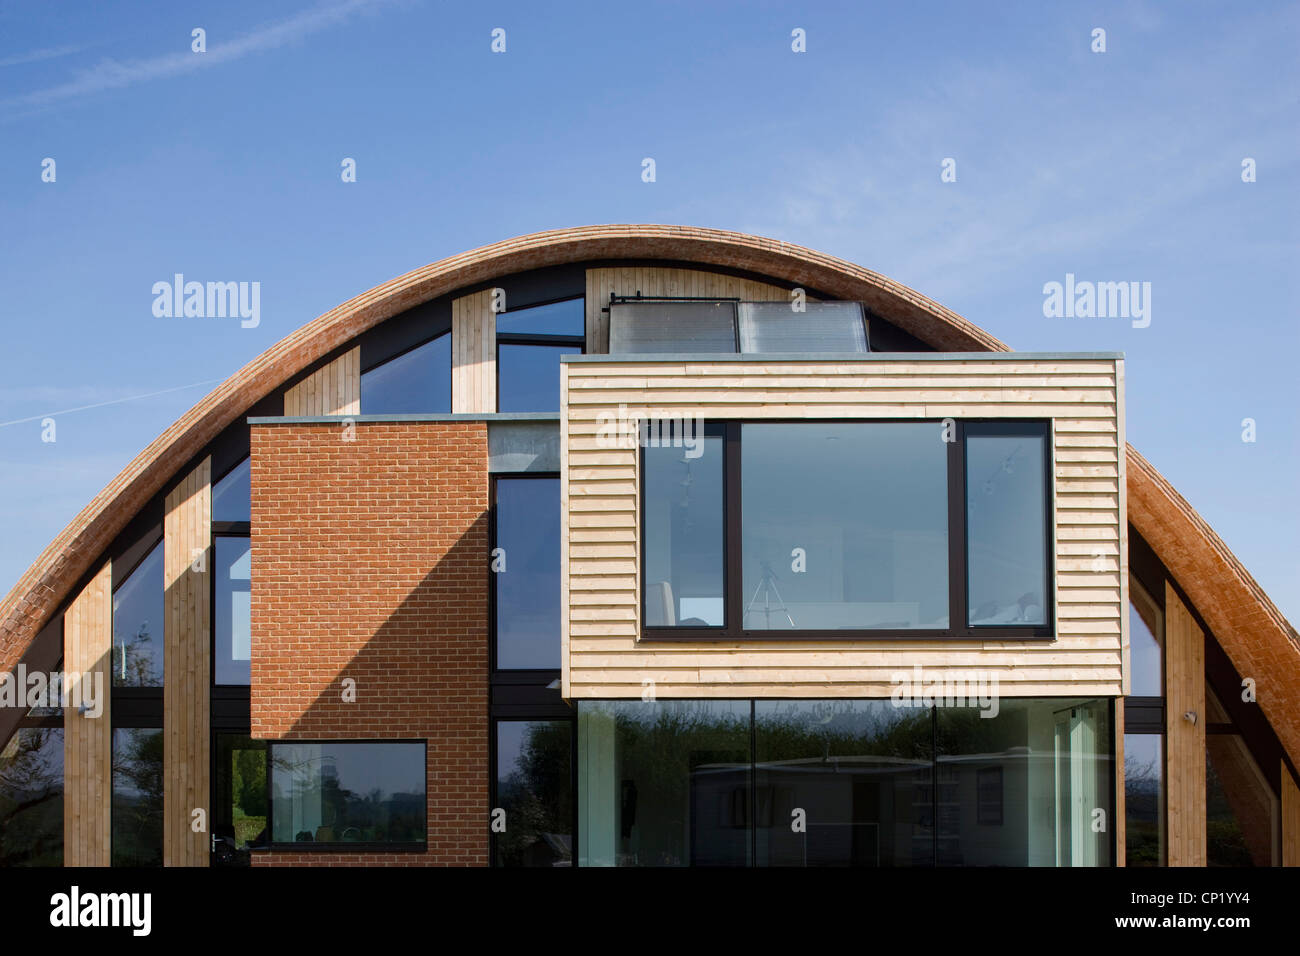 zero carbon house, Crossway, Kent, England, UK, England. Semicurcular front facade with windows - Stock Image